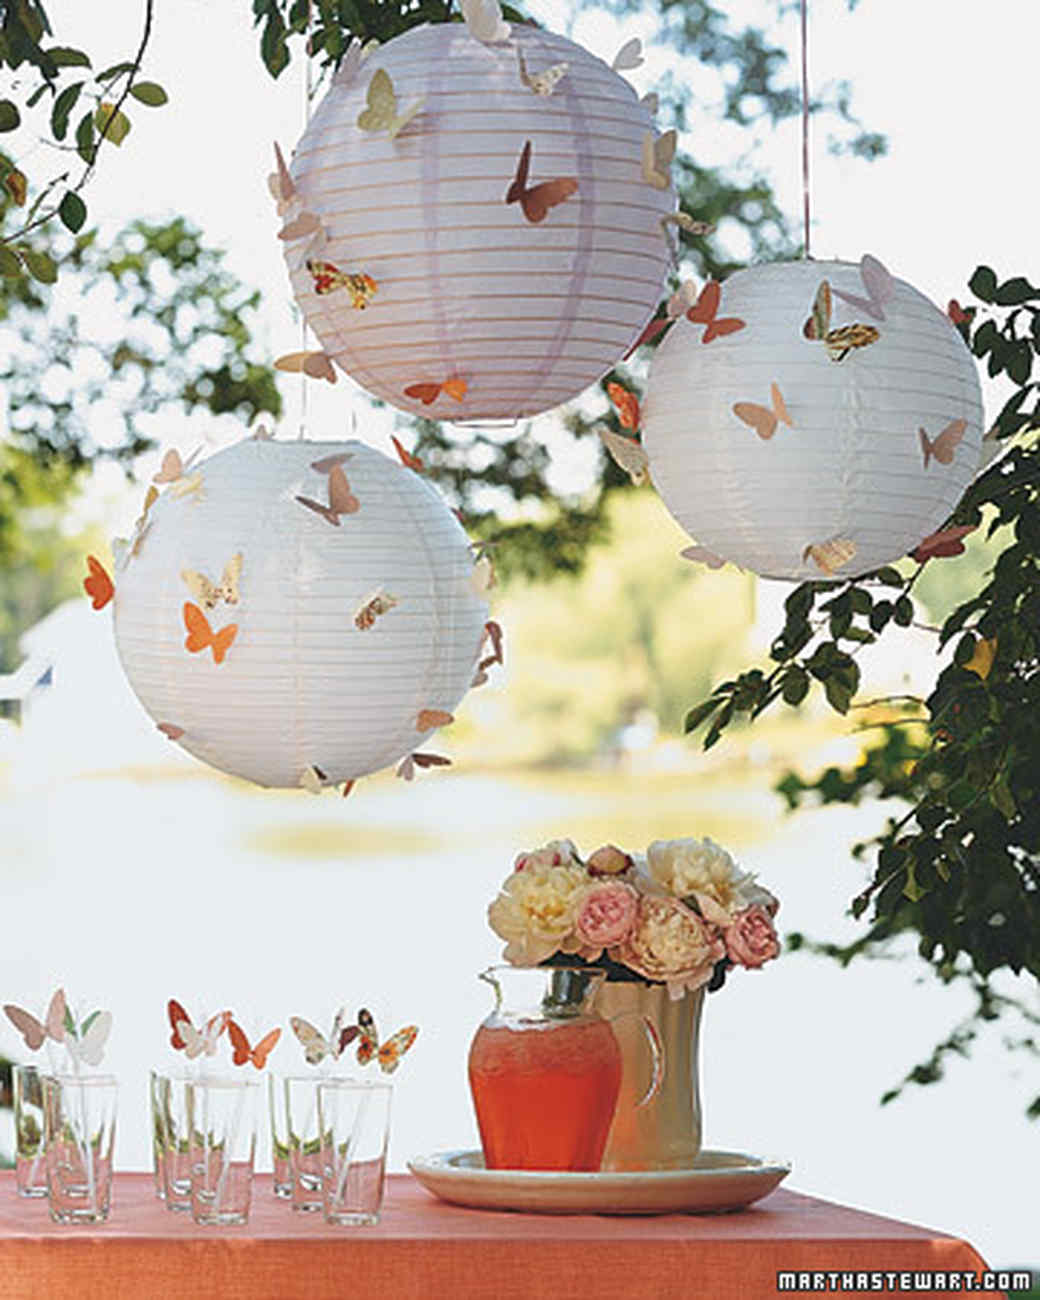 Ideas for Spring Parties | Martha Stewart